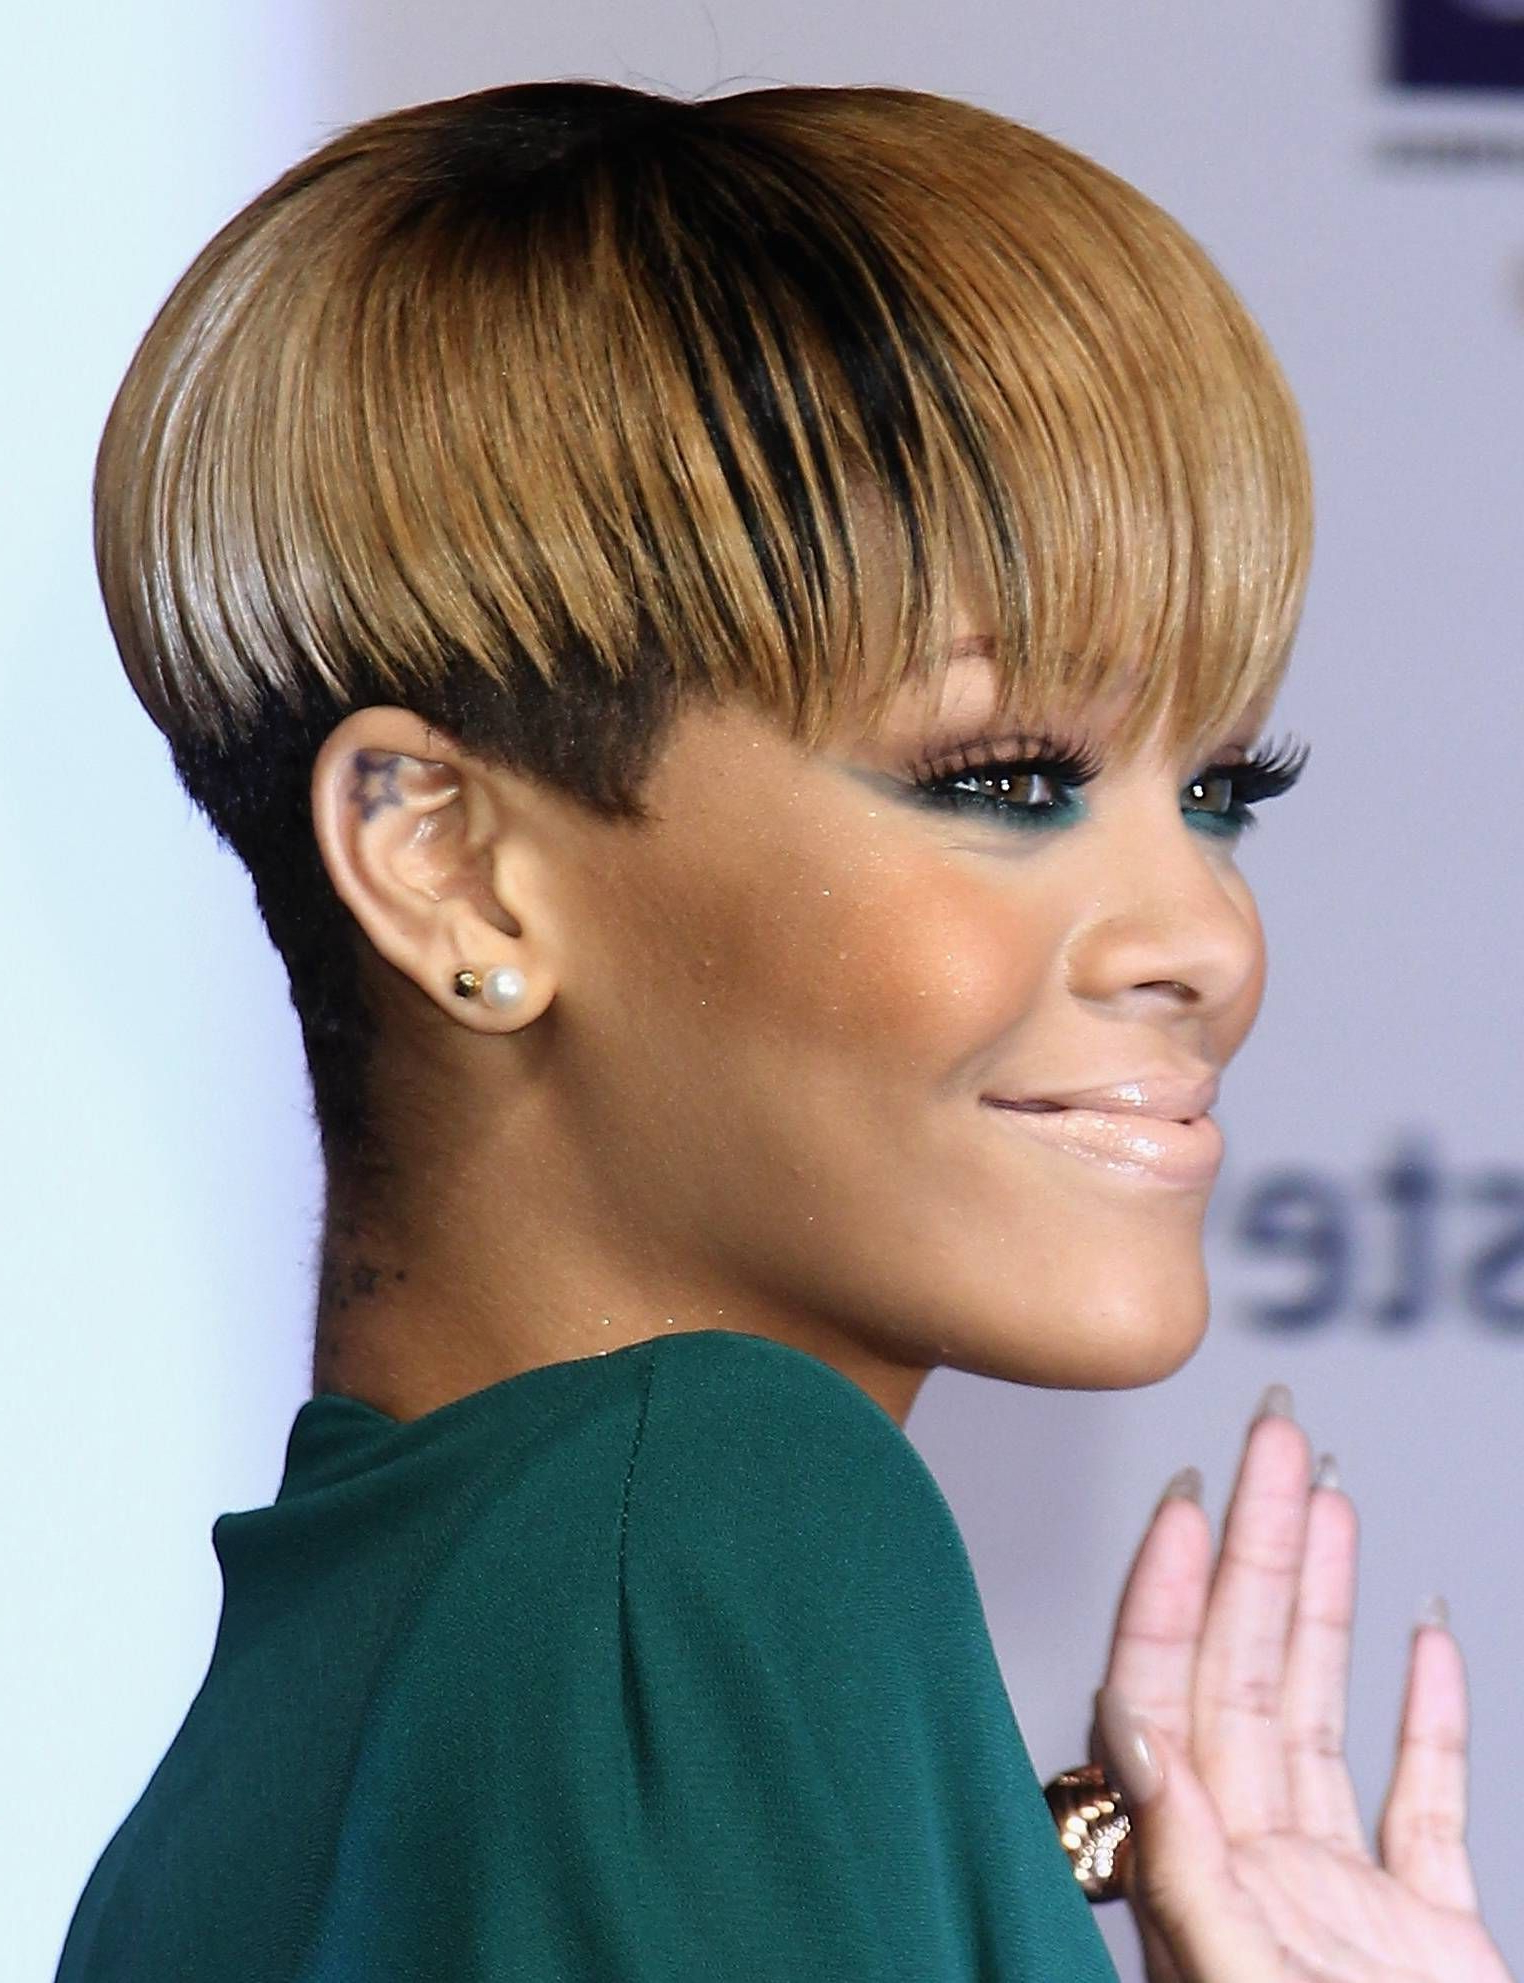 Short Haircuts: The Best Edgy Styles For Black Women In 2018 For Edgy Short Haircuts For Black Women (View 20 of 25)